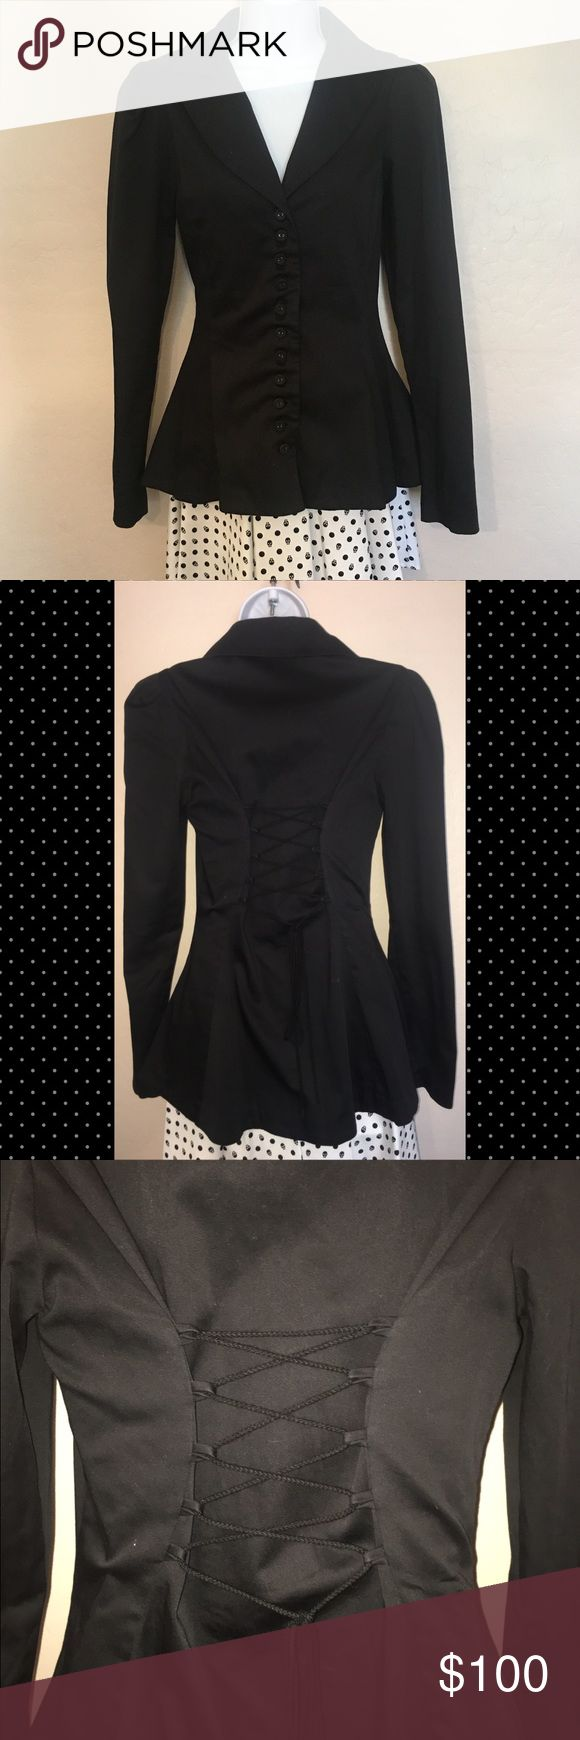 Betsey Johnson Black Blazer This super adorable jacket by Betsey Johnson has 10 buttons down the front, corset backing that will fit a variety of sizes. Great to match with a dress for the evening, casual, or even the office! 97% cotton, 3% spandex. Dry clean only. Bust: 32-36 Waist: 30-32 Betsey Johnson Jackets & Coats Blazers